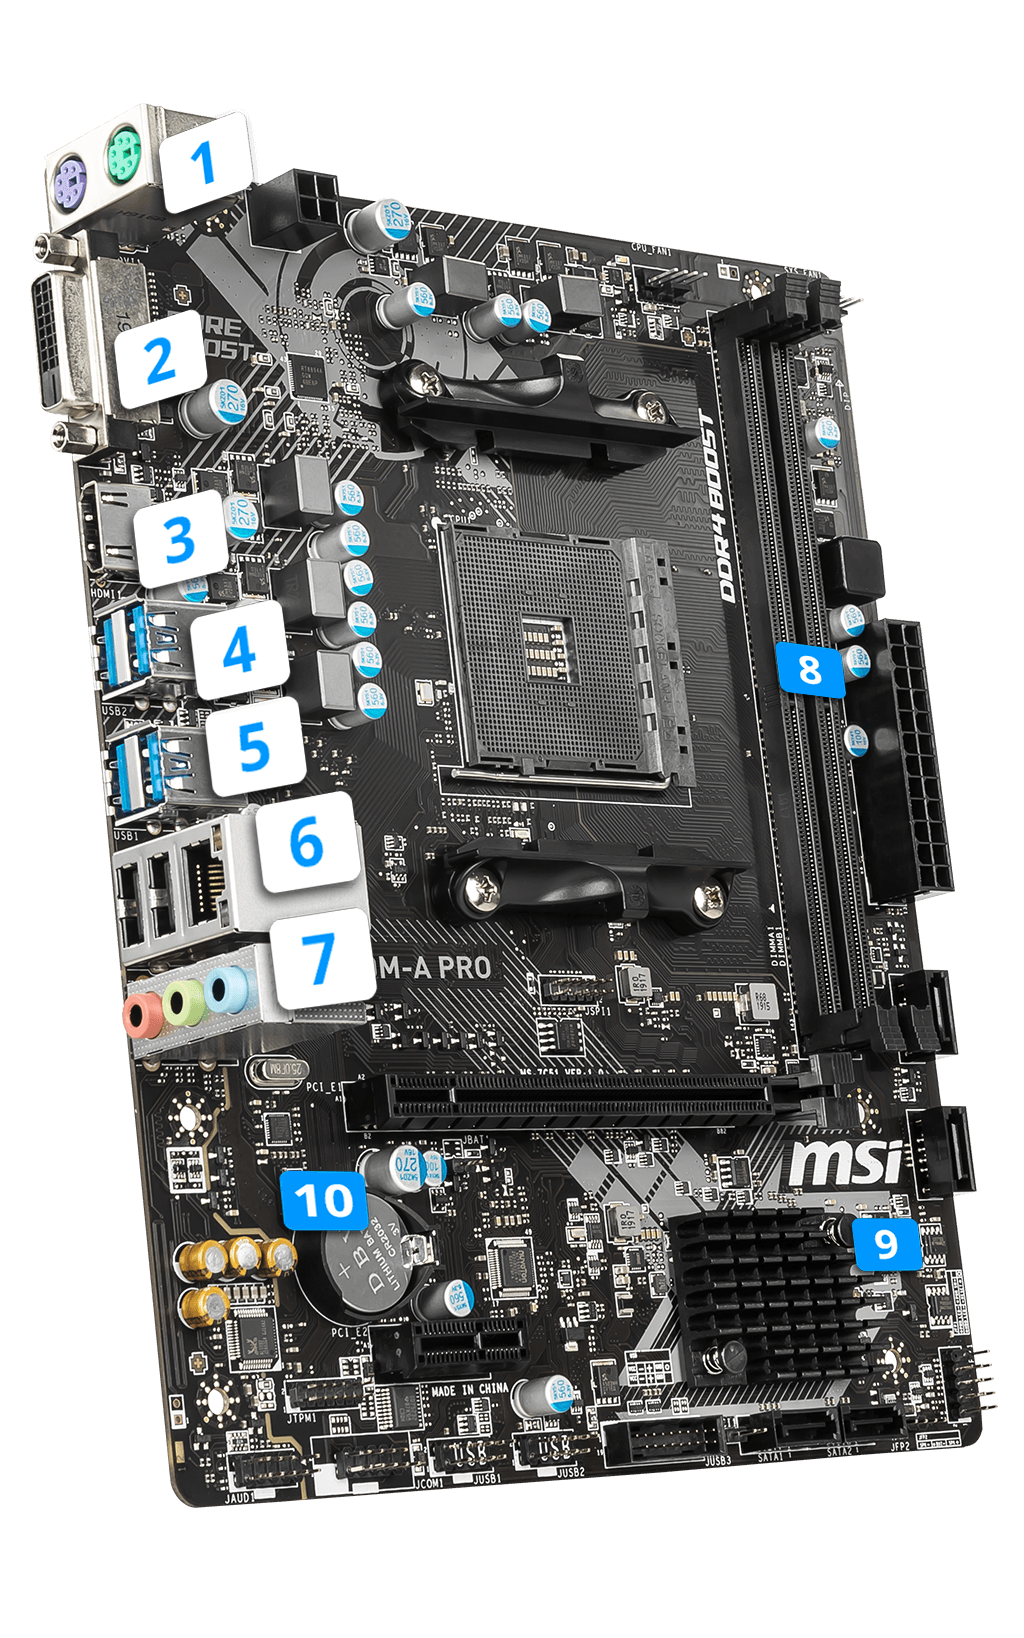 MSI A320M-A PRO overview